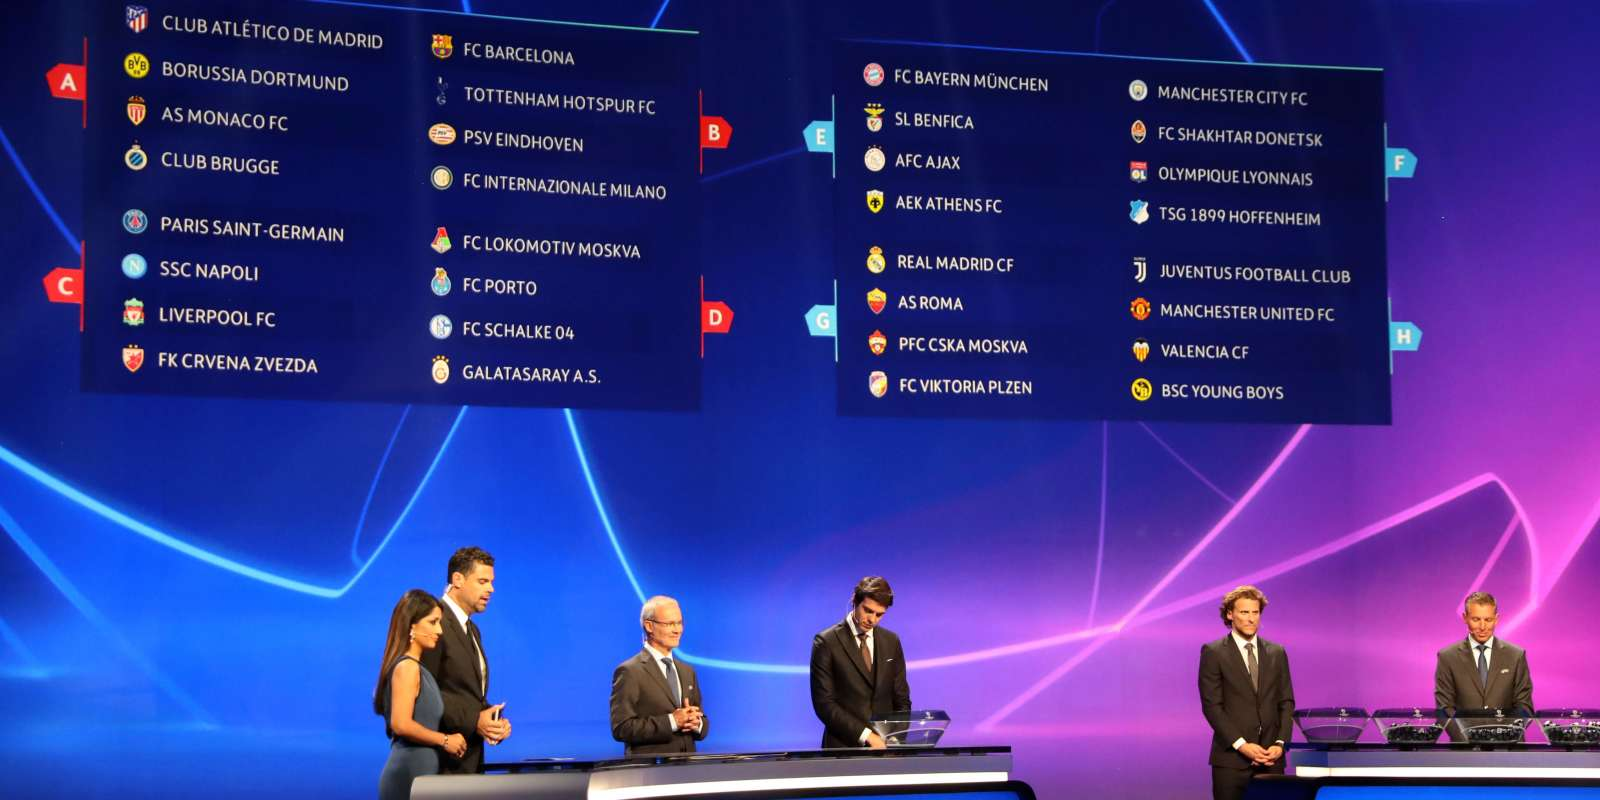 A board displays the result of the draw for UEFA Champions League football tournament at The Grimaldi Forum in Monaco on August 30, 2018. / AFP / Valery HACHE